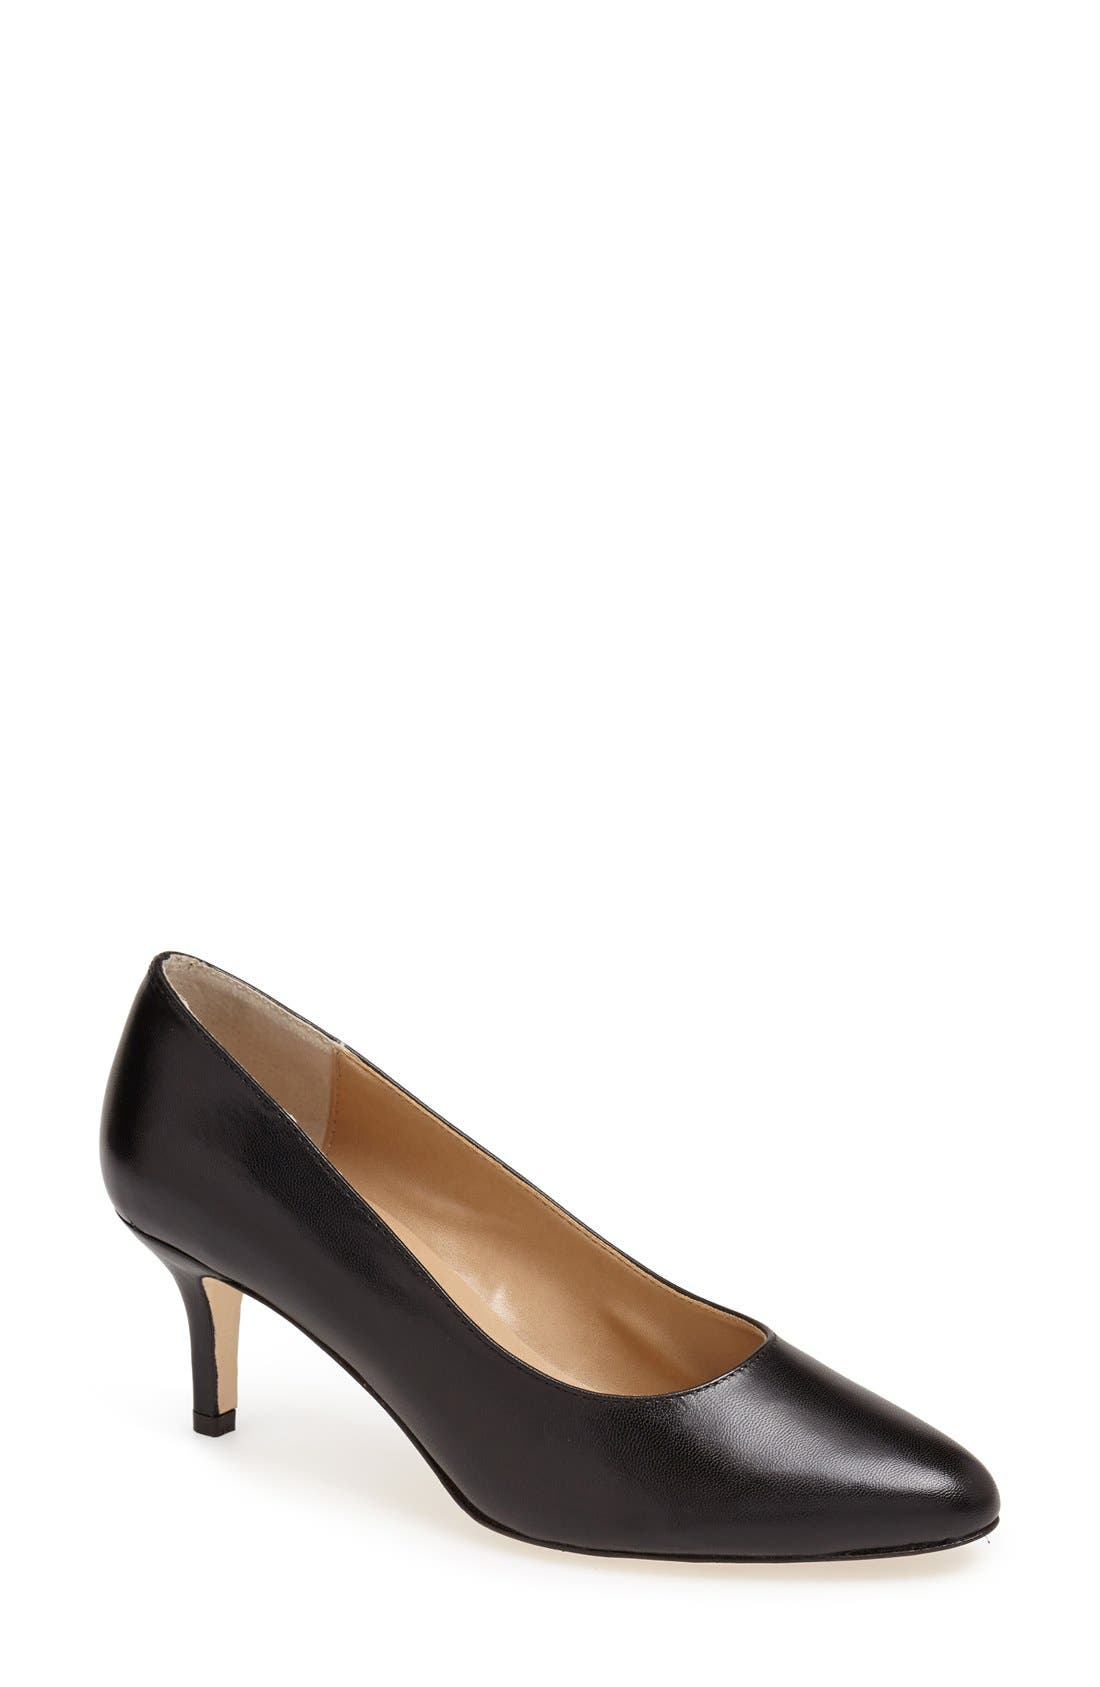 Alternate Image 1 Selected - VANELi 'Laureen' Leather Pump